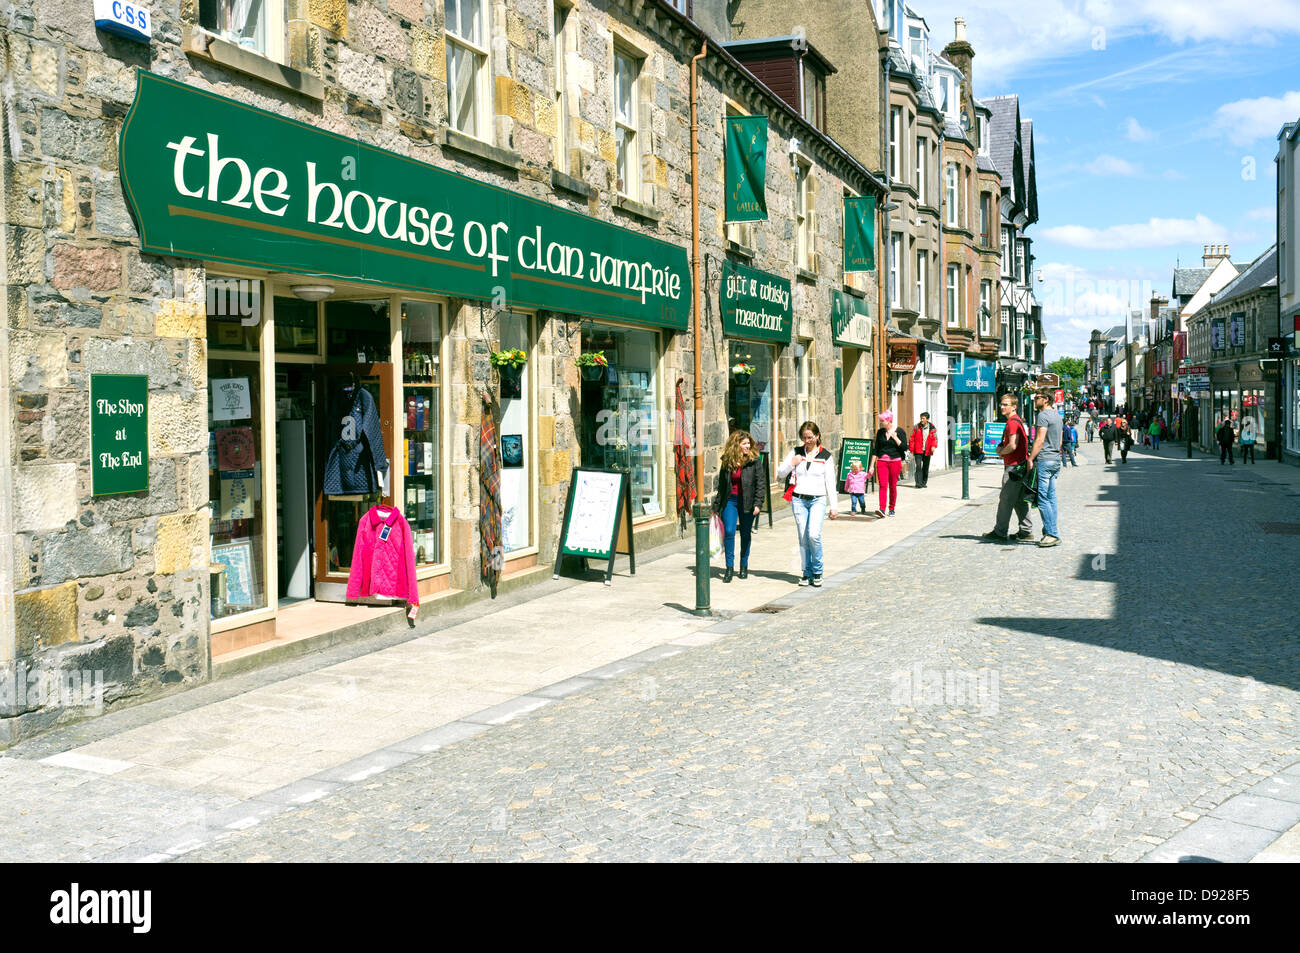 Shops and Shoppers Fort William main street Highlands Scotland UK Stock Photo